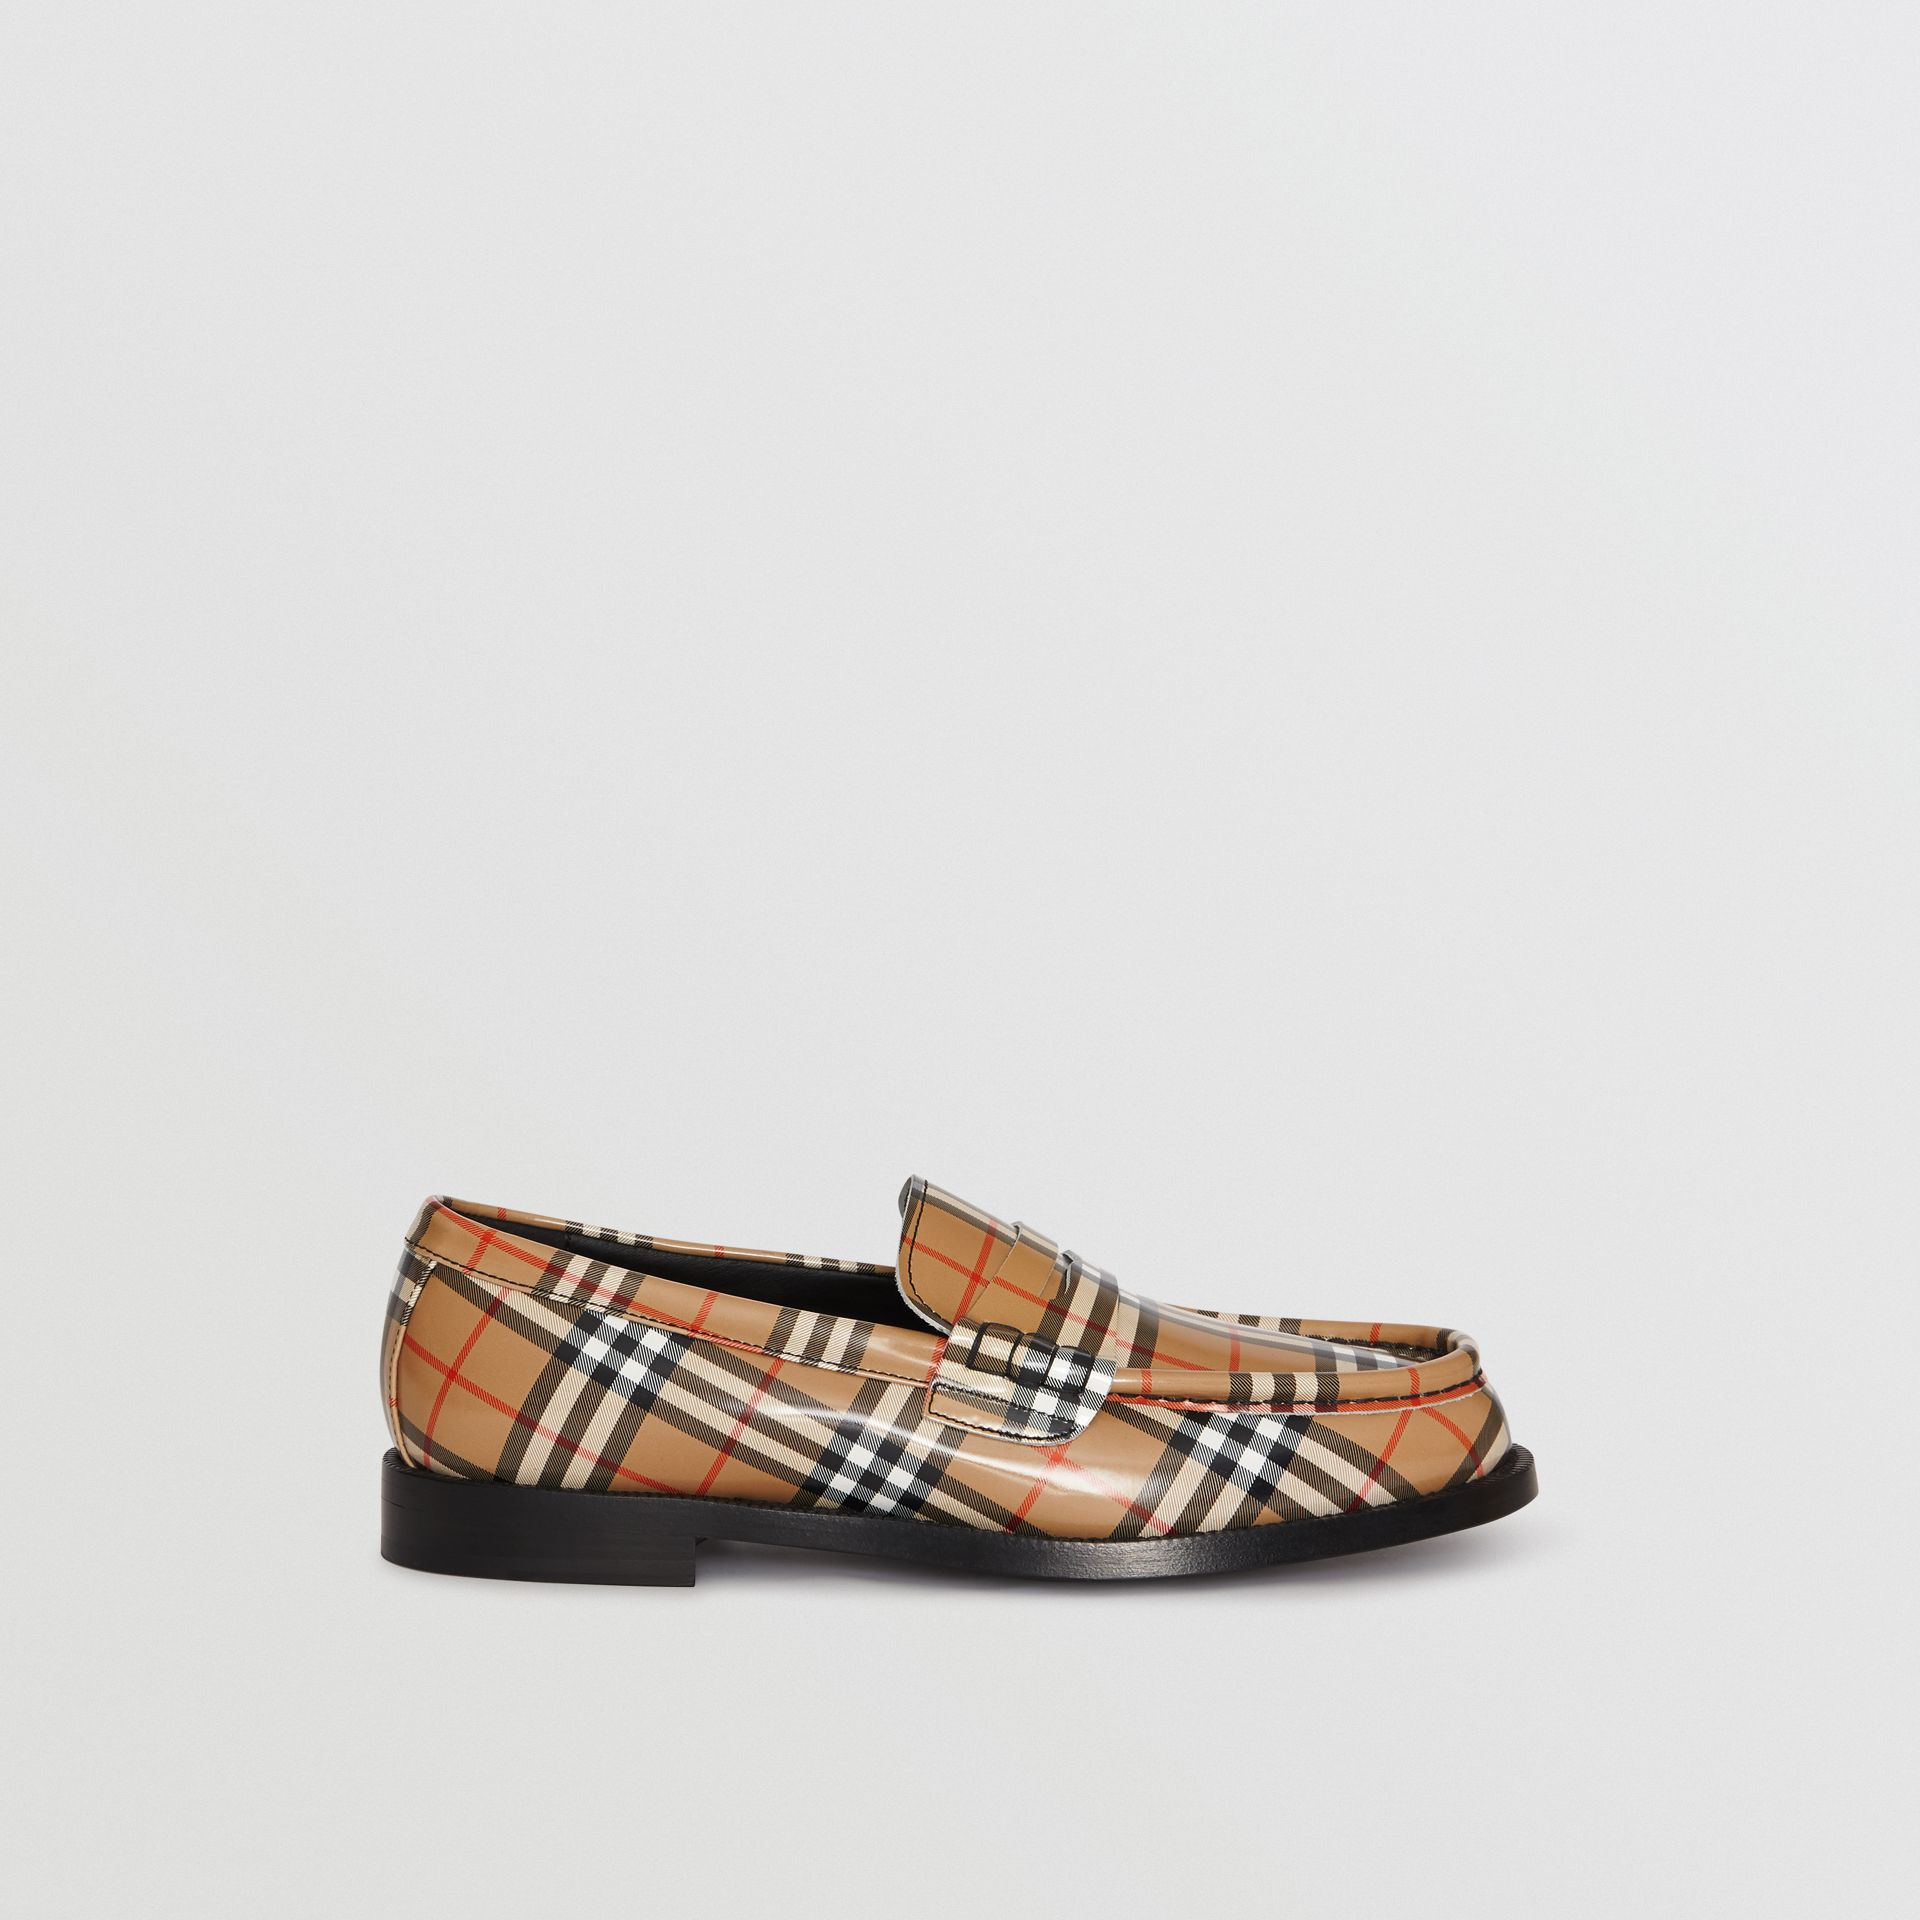 Gosha x Burberry Check Leather Loafers in Antique Yellow - Men | Burberry - gallery image 6